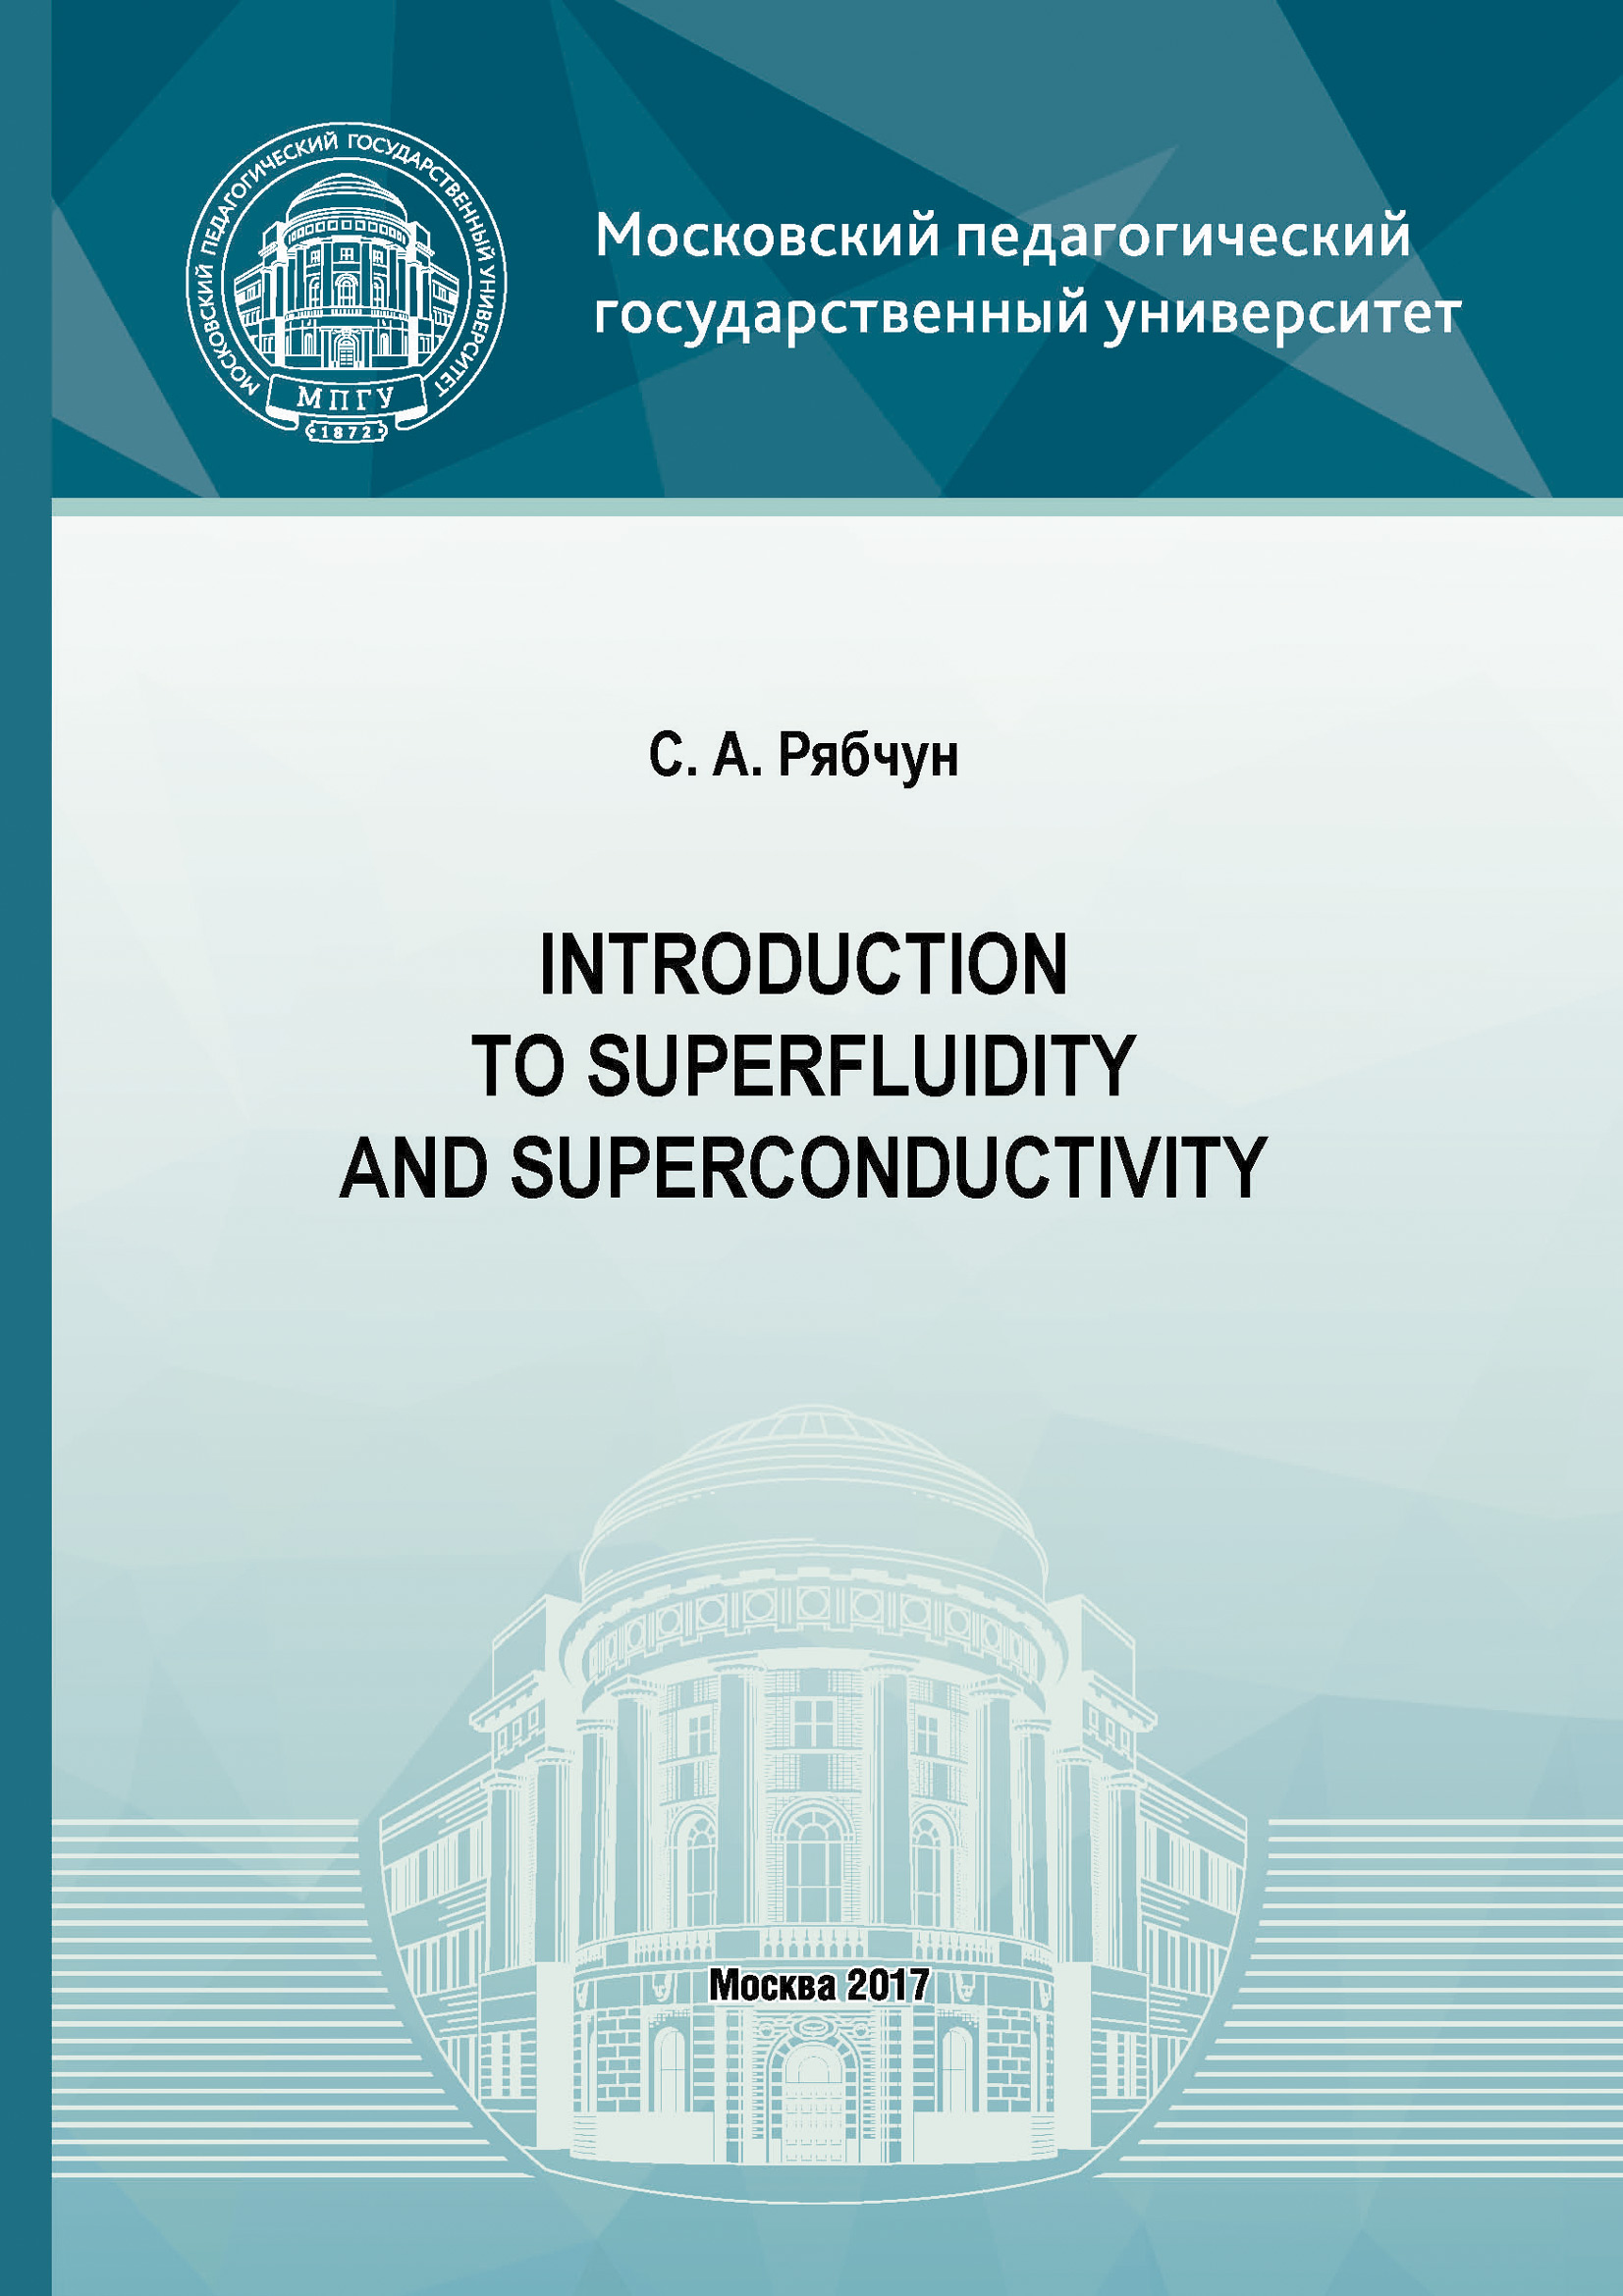 С. А. Рябчун Introduction to superfluidity and superconductivity gren ireson discovering superconductivity an investigative approach isbn 9781118343197